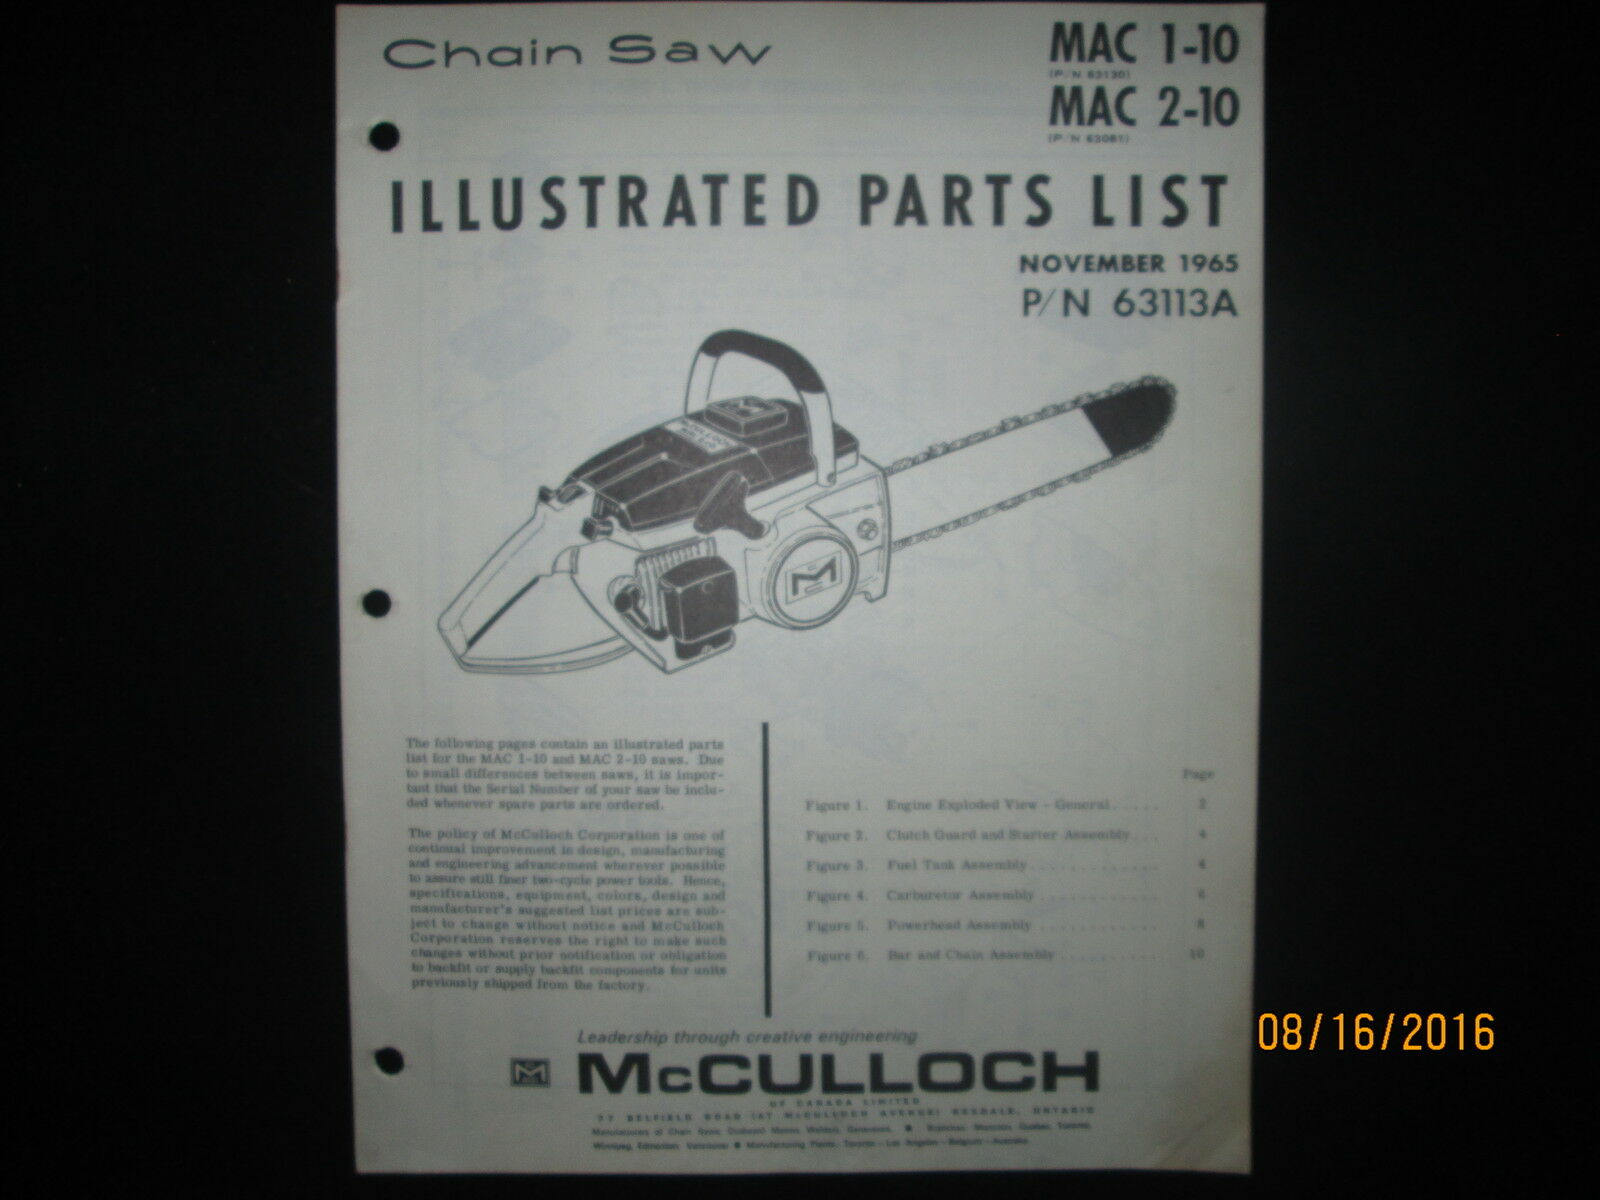 McCULLOCH CHAIN SAW MAC 1-10 & Mac 2-10 Parts List Book Manual 1 of 2Only 1  available ...